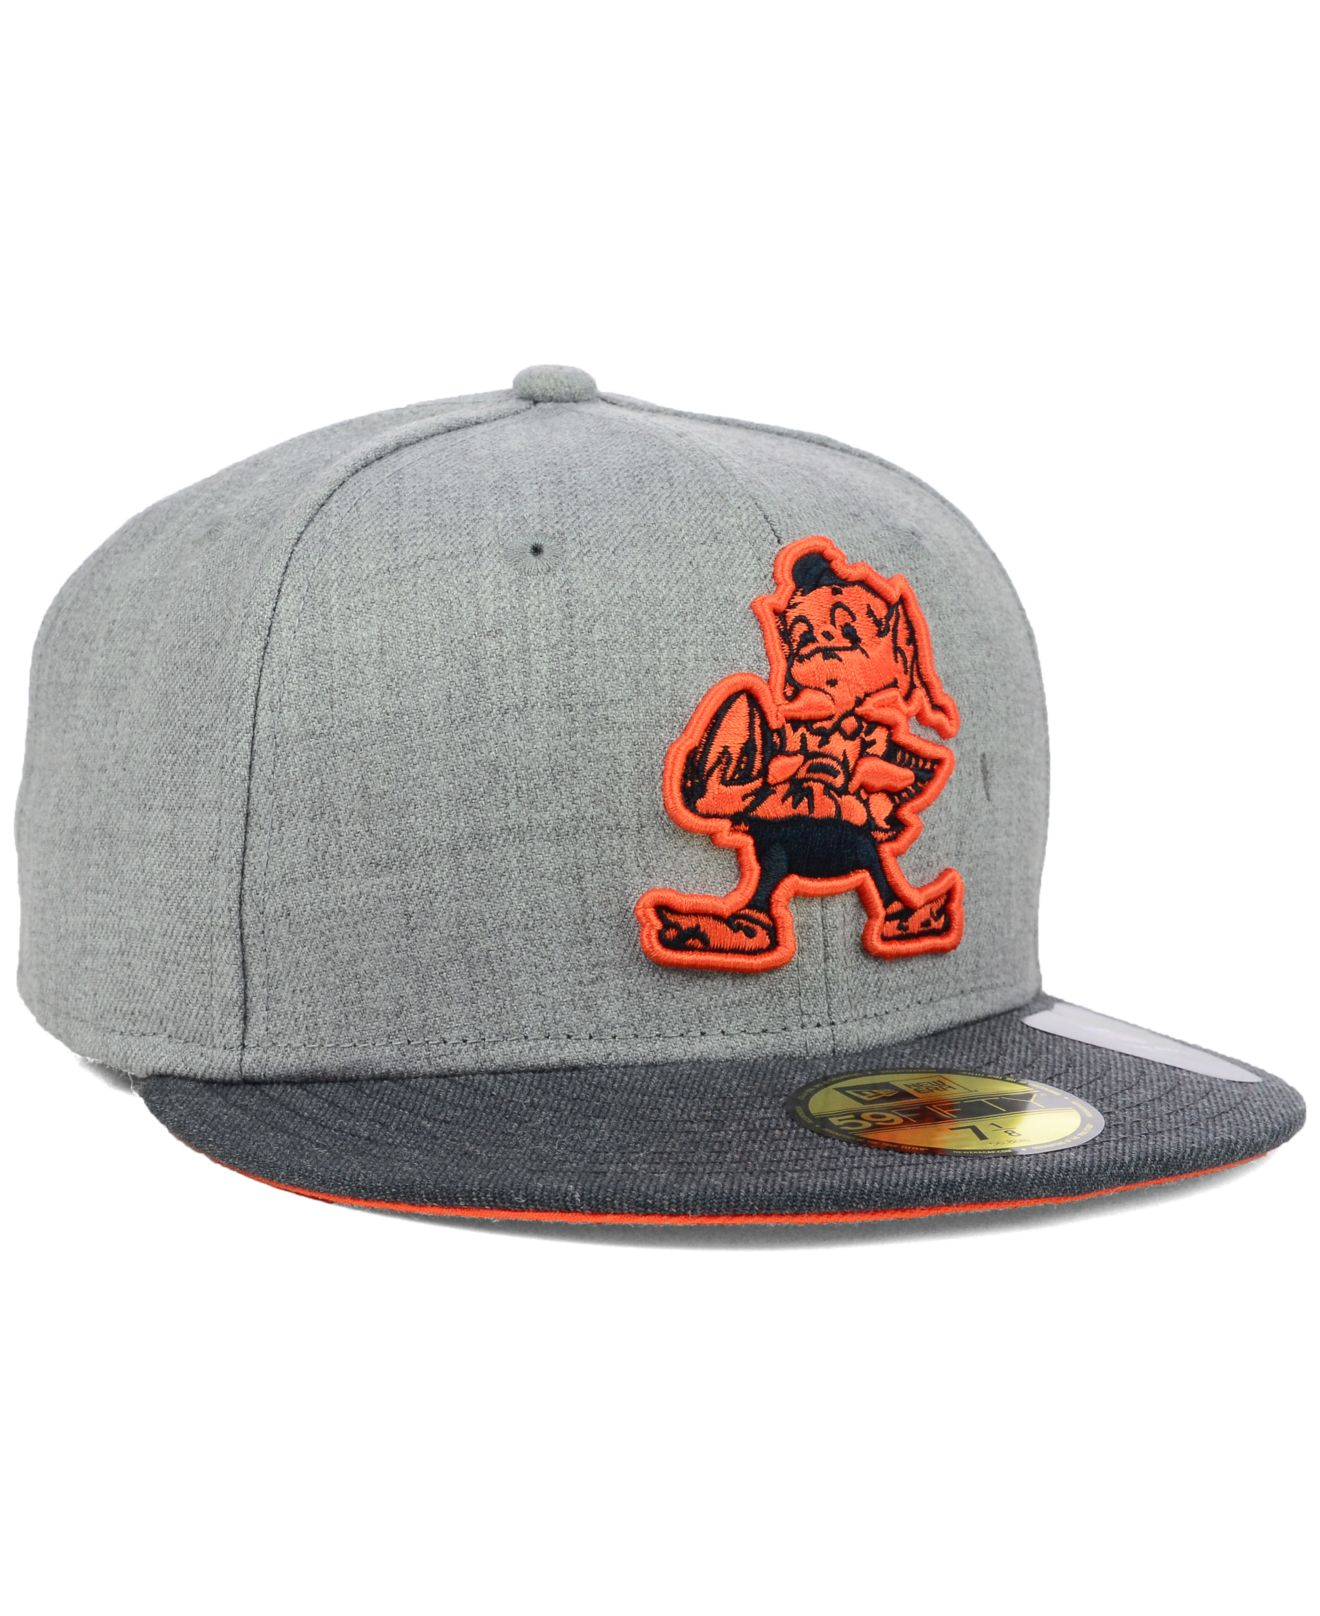 Men S Cleveland Browns New Era Gray 2015 Nfl Draft 59fifty